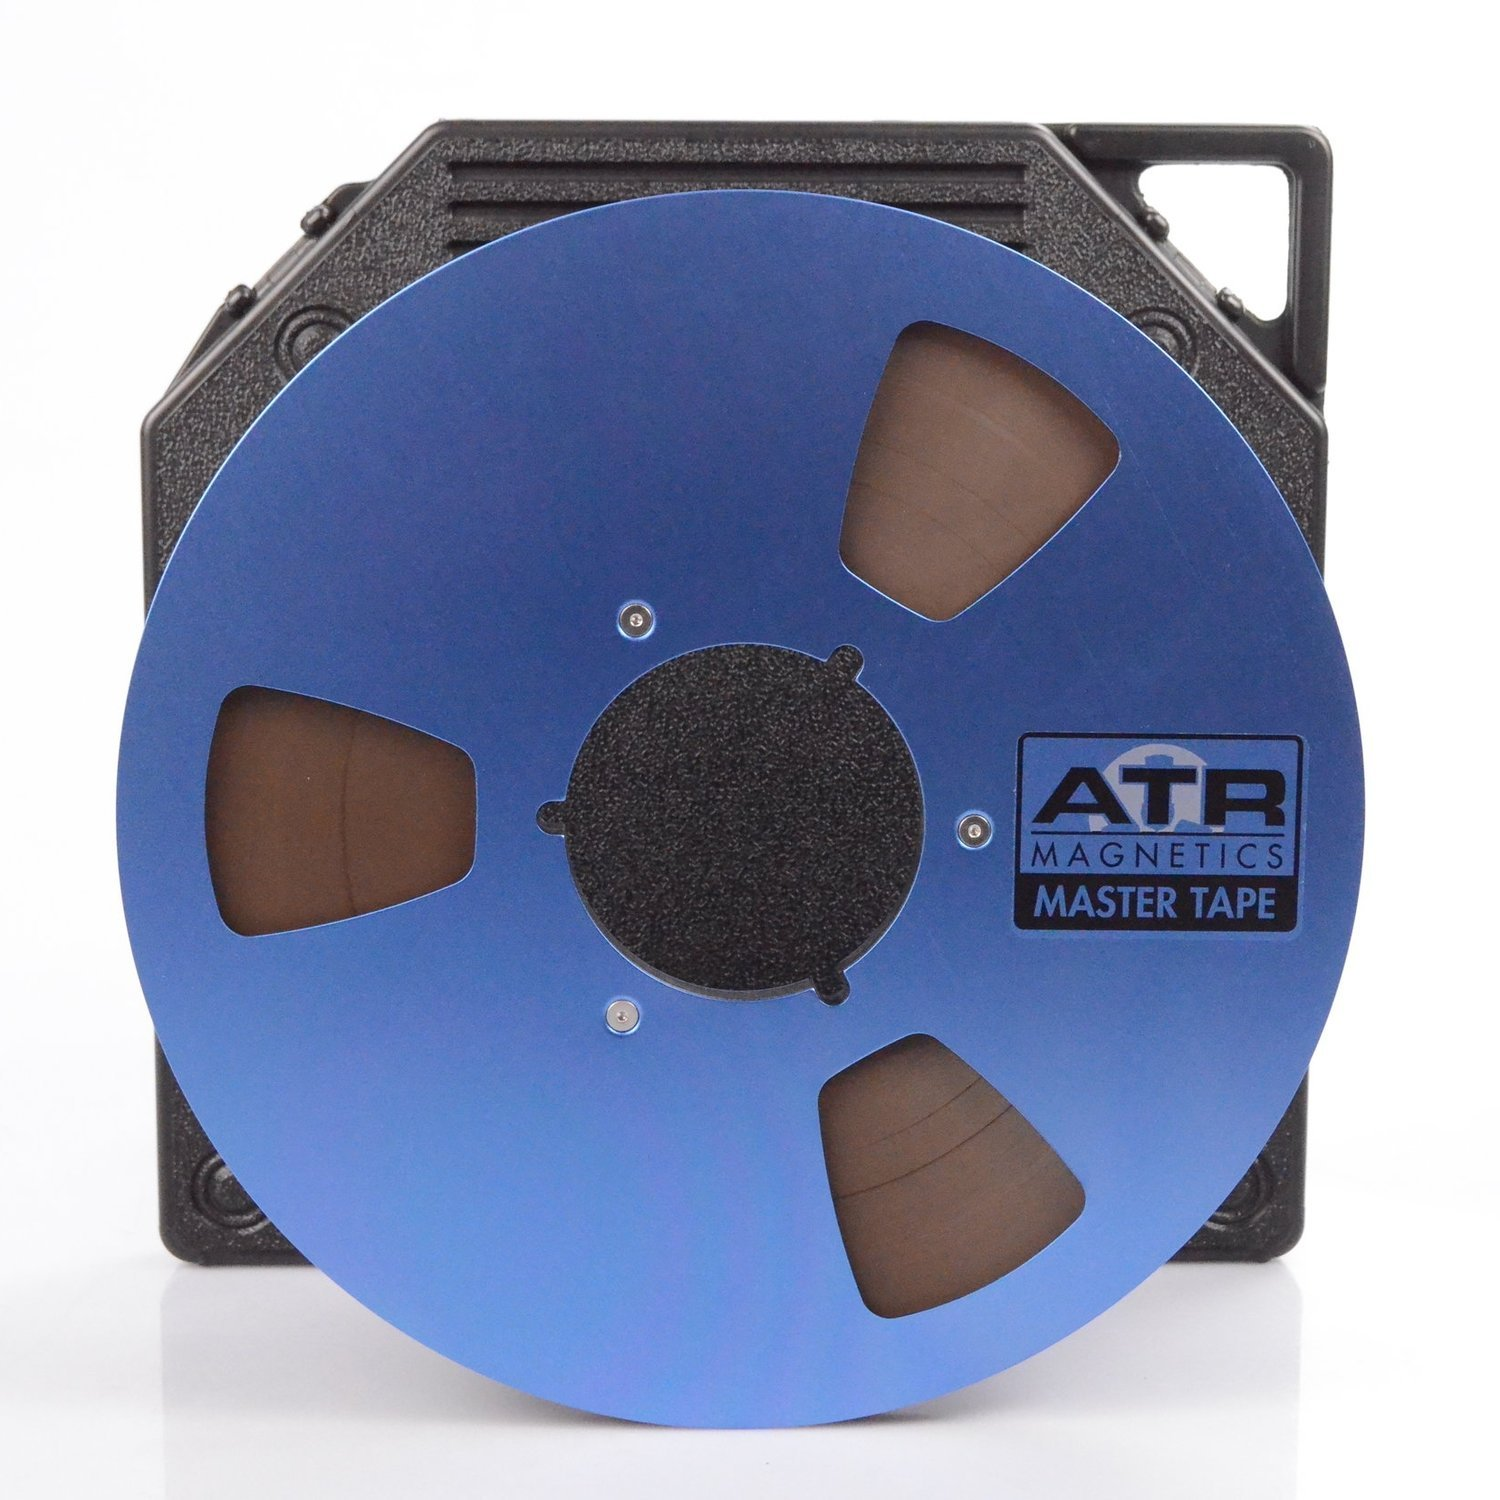 ATR Master Tape 1/4 x 2,500' 10.5 NAB Metal Reel Tape Care Box